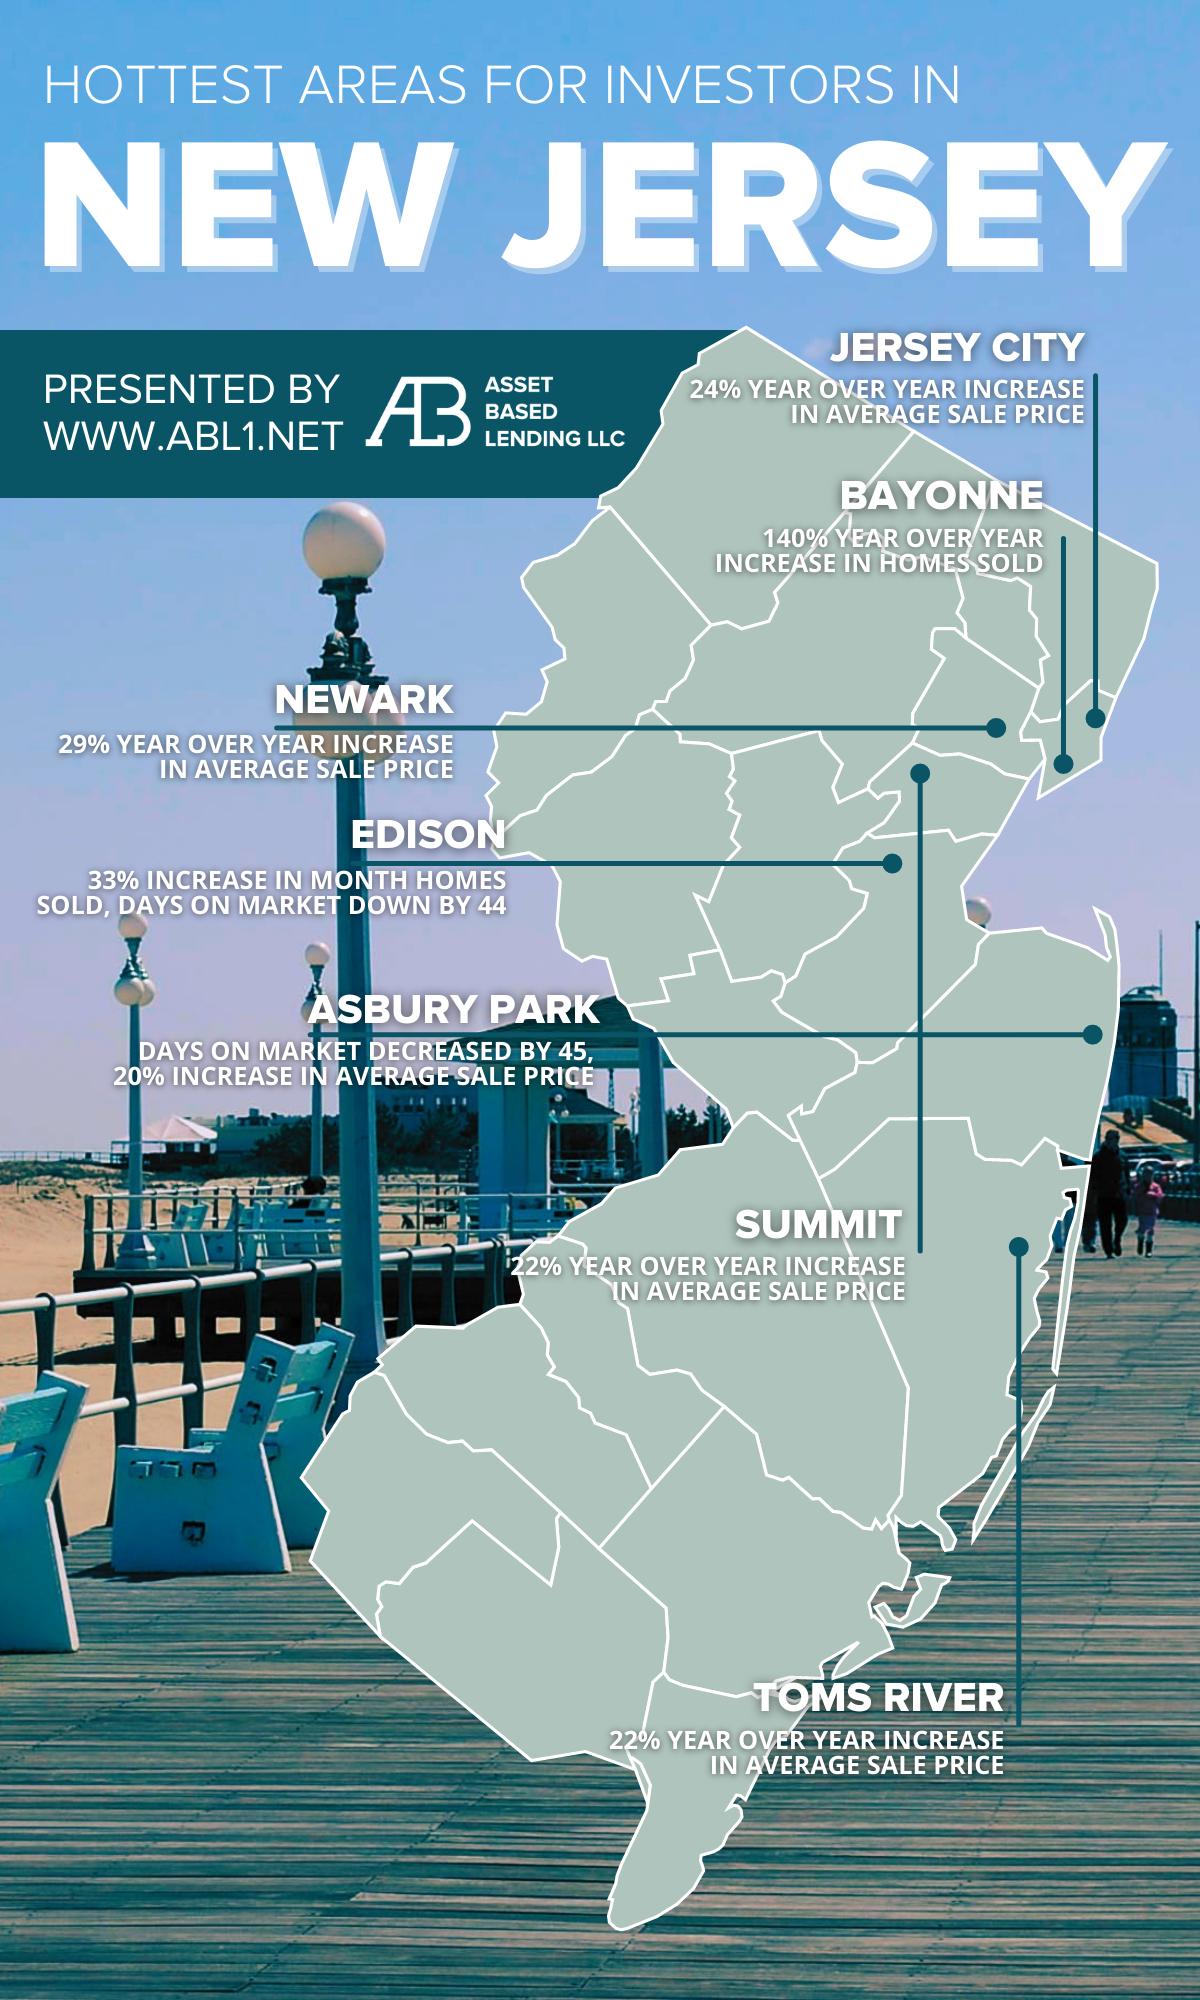 Best Places To Invest in New Jersey